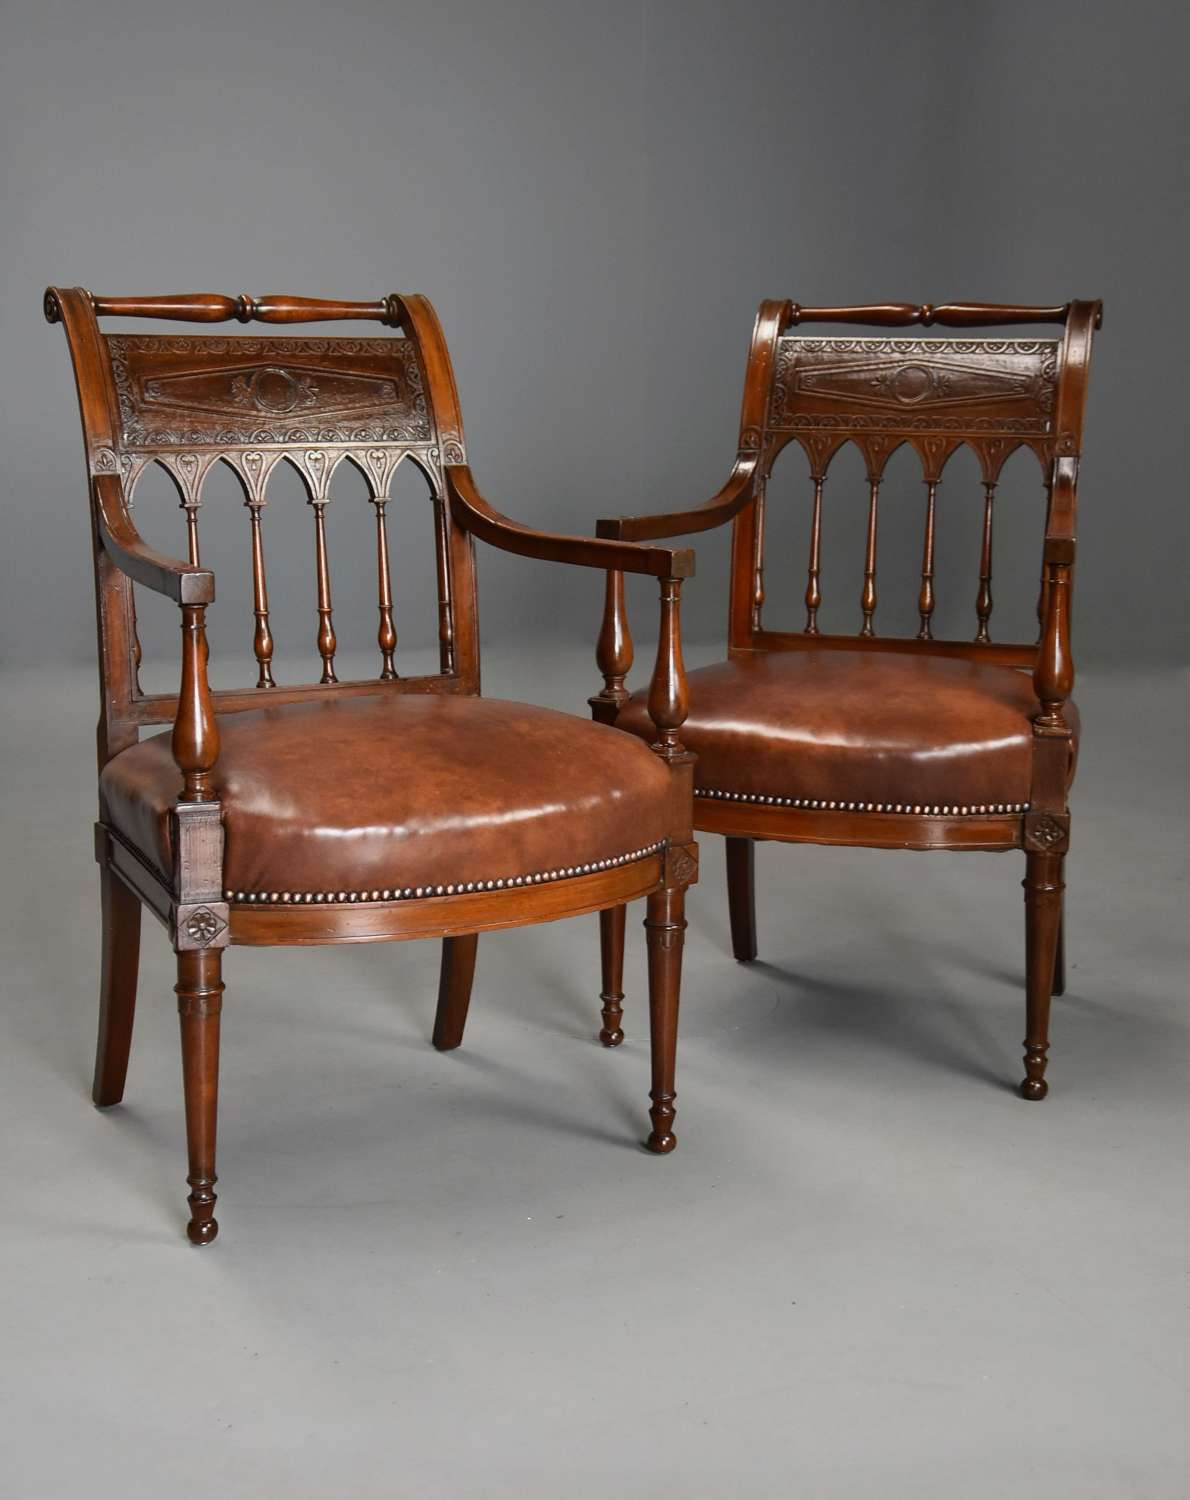 Rare & superb pair of French late 18thc Directoire walnut armchairs